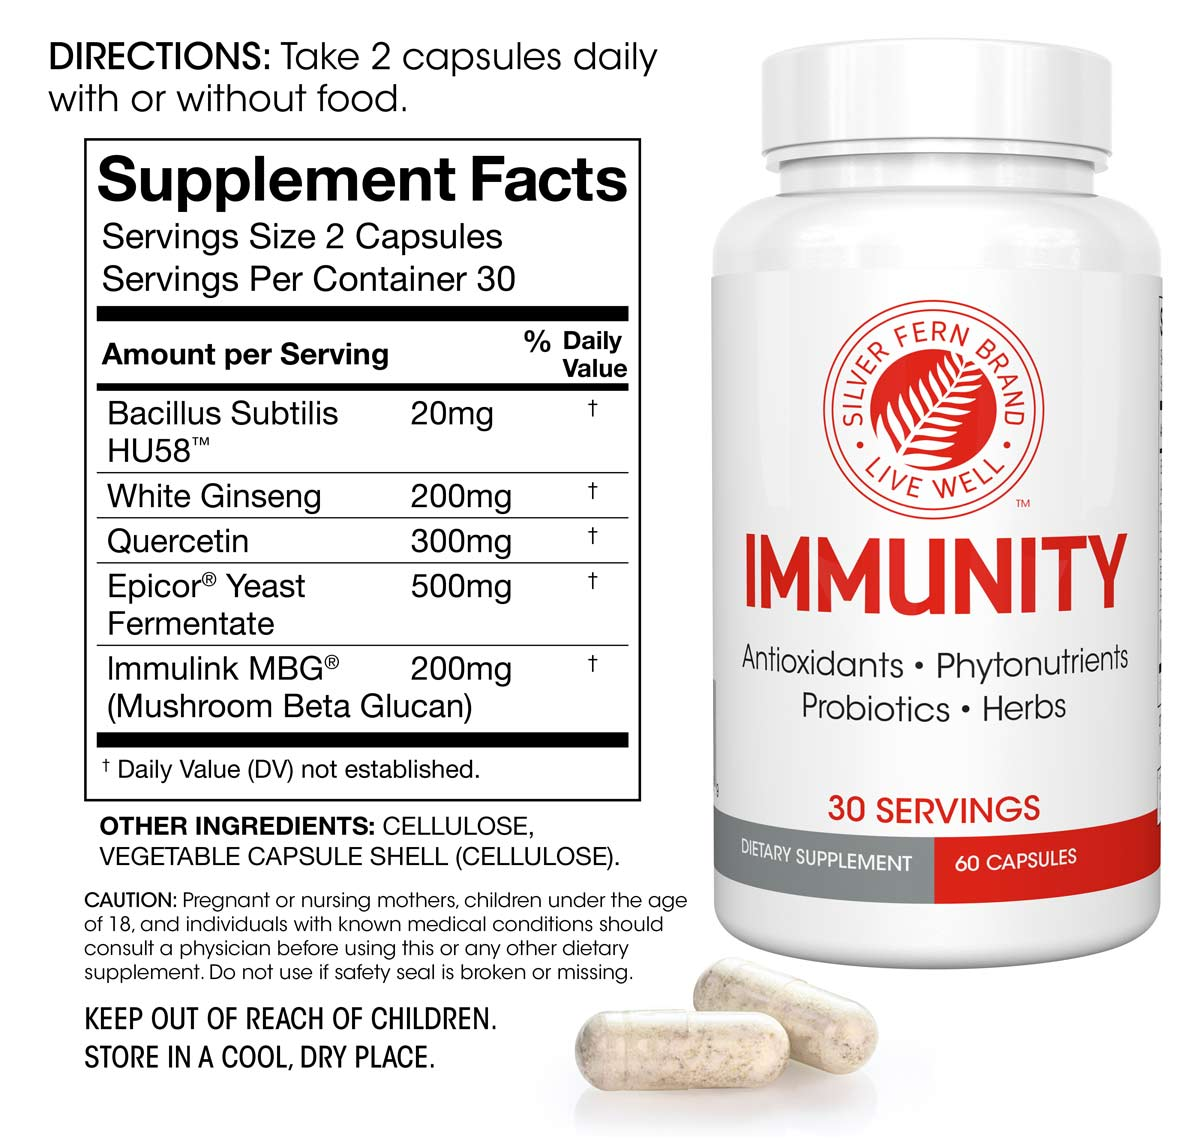 Immunity - Immune System Support and Antioxidants Supplement Facts